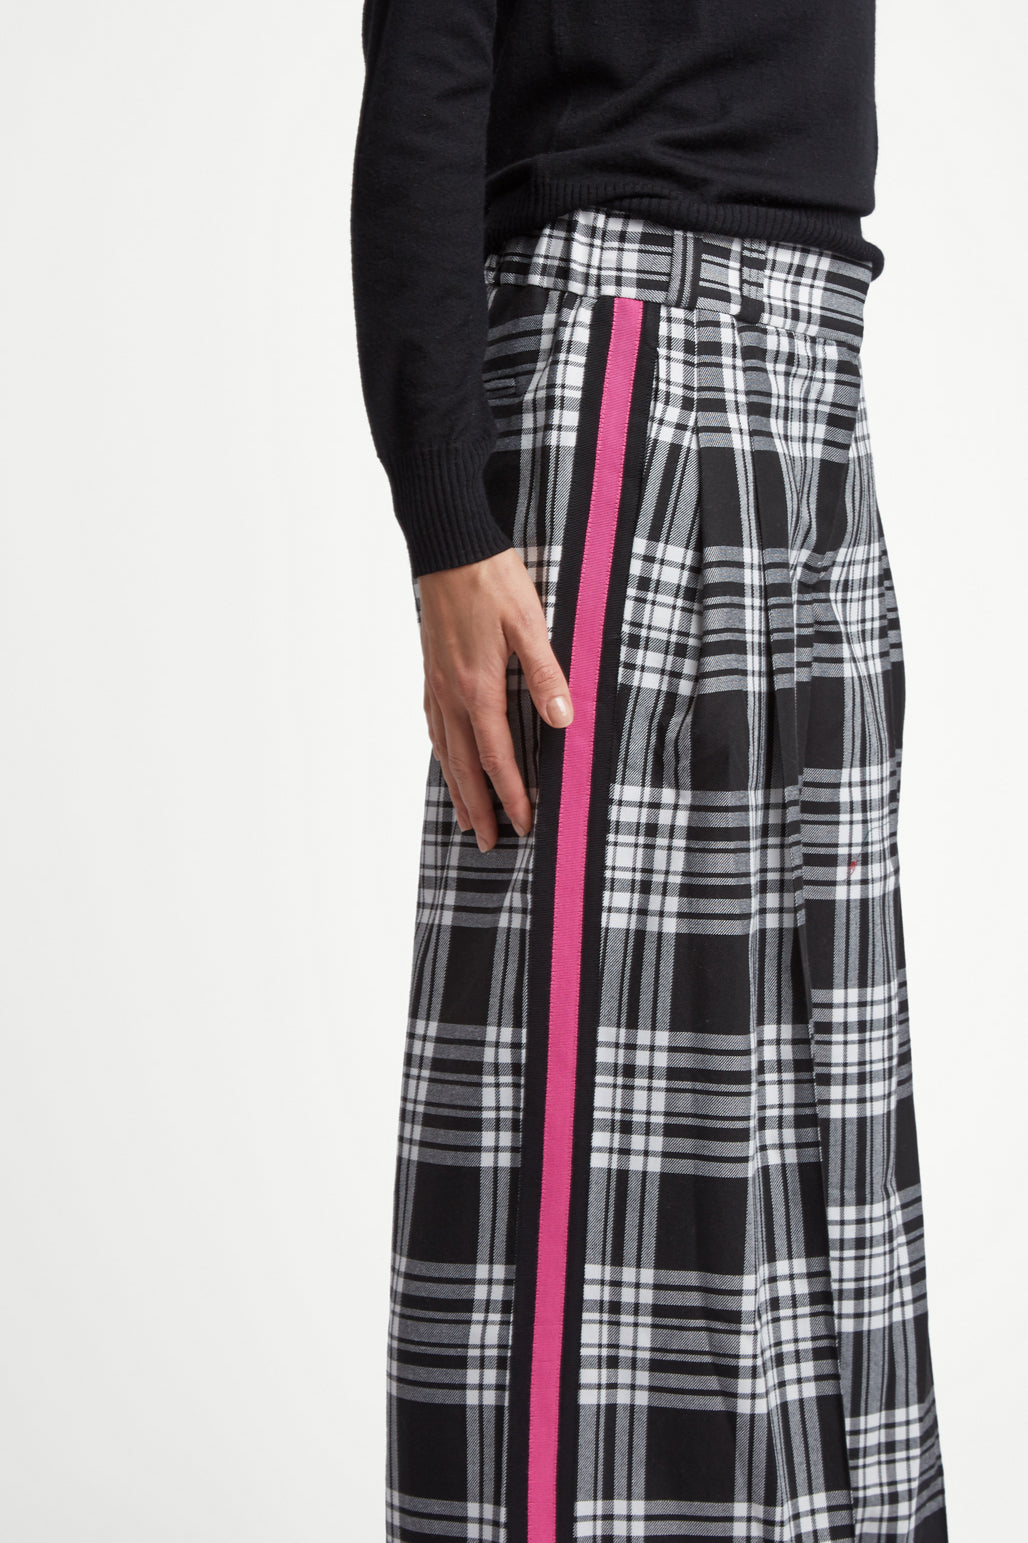 The Serena Trouser - Black, White & Shocking Pink Plaid Cotton - SERENA BUTE